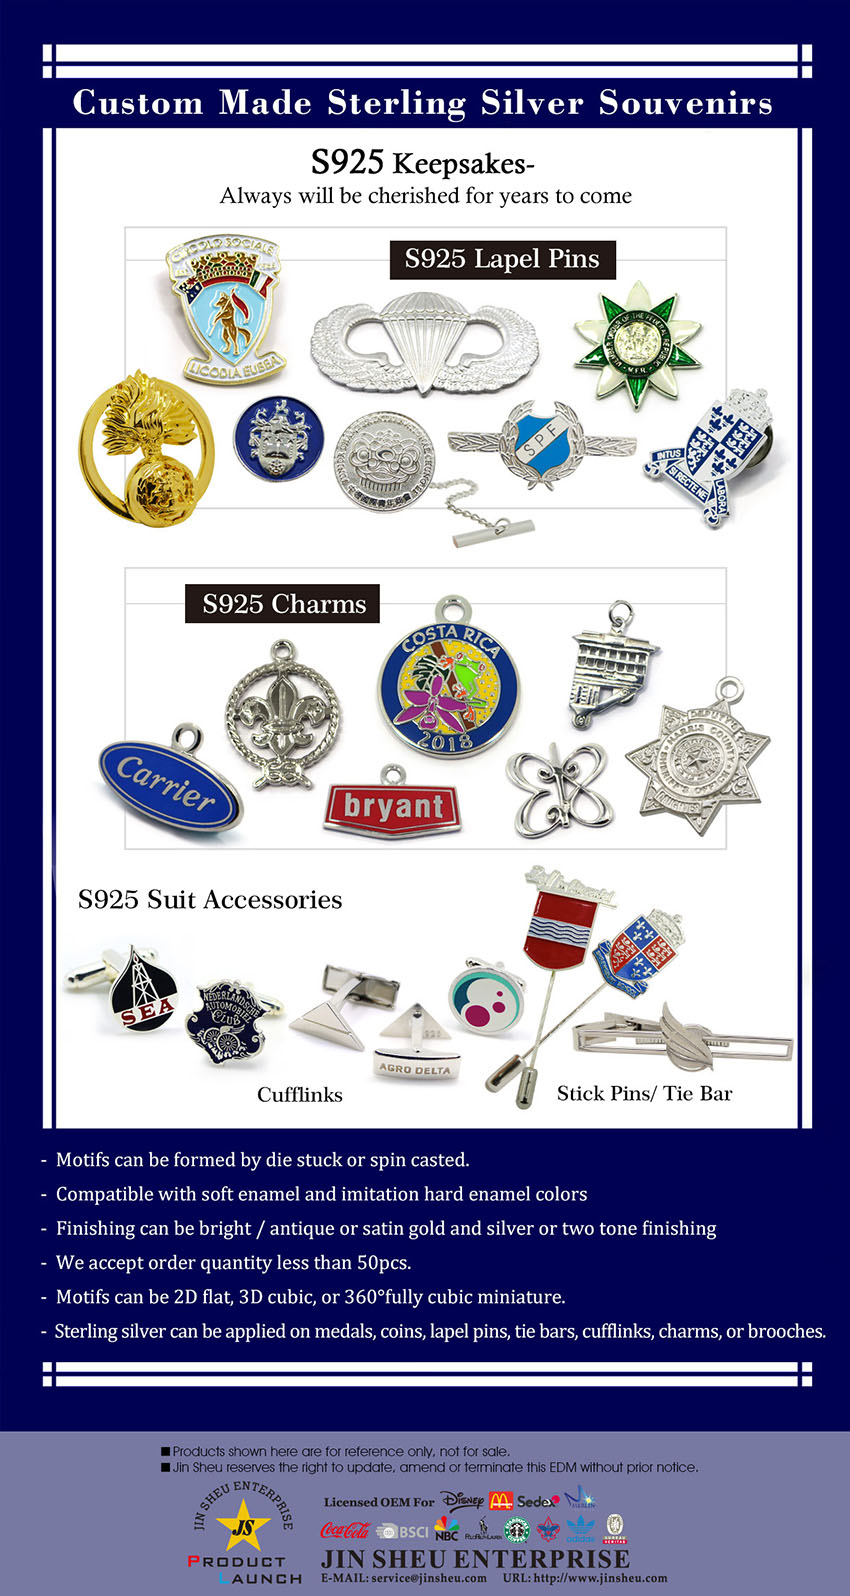 Custom Made Sterling Silver Souvenirs